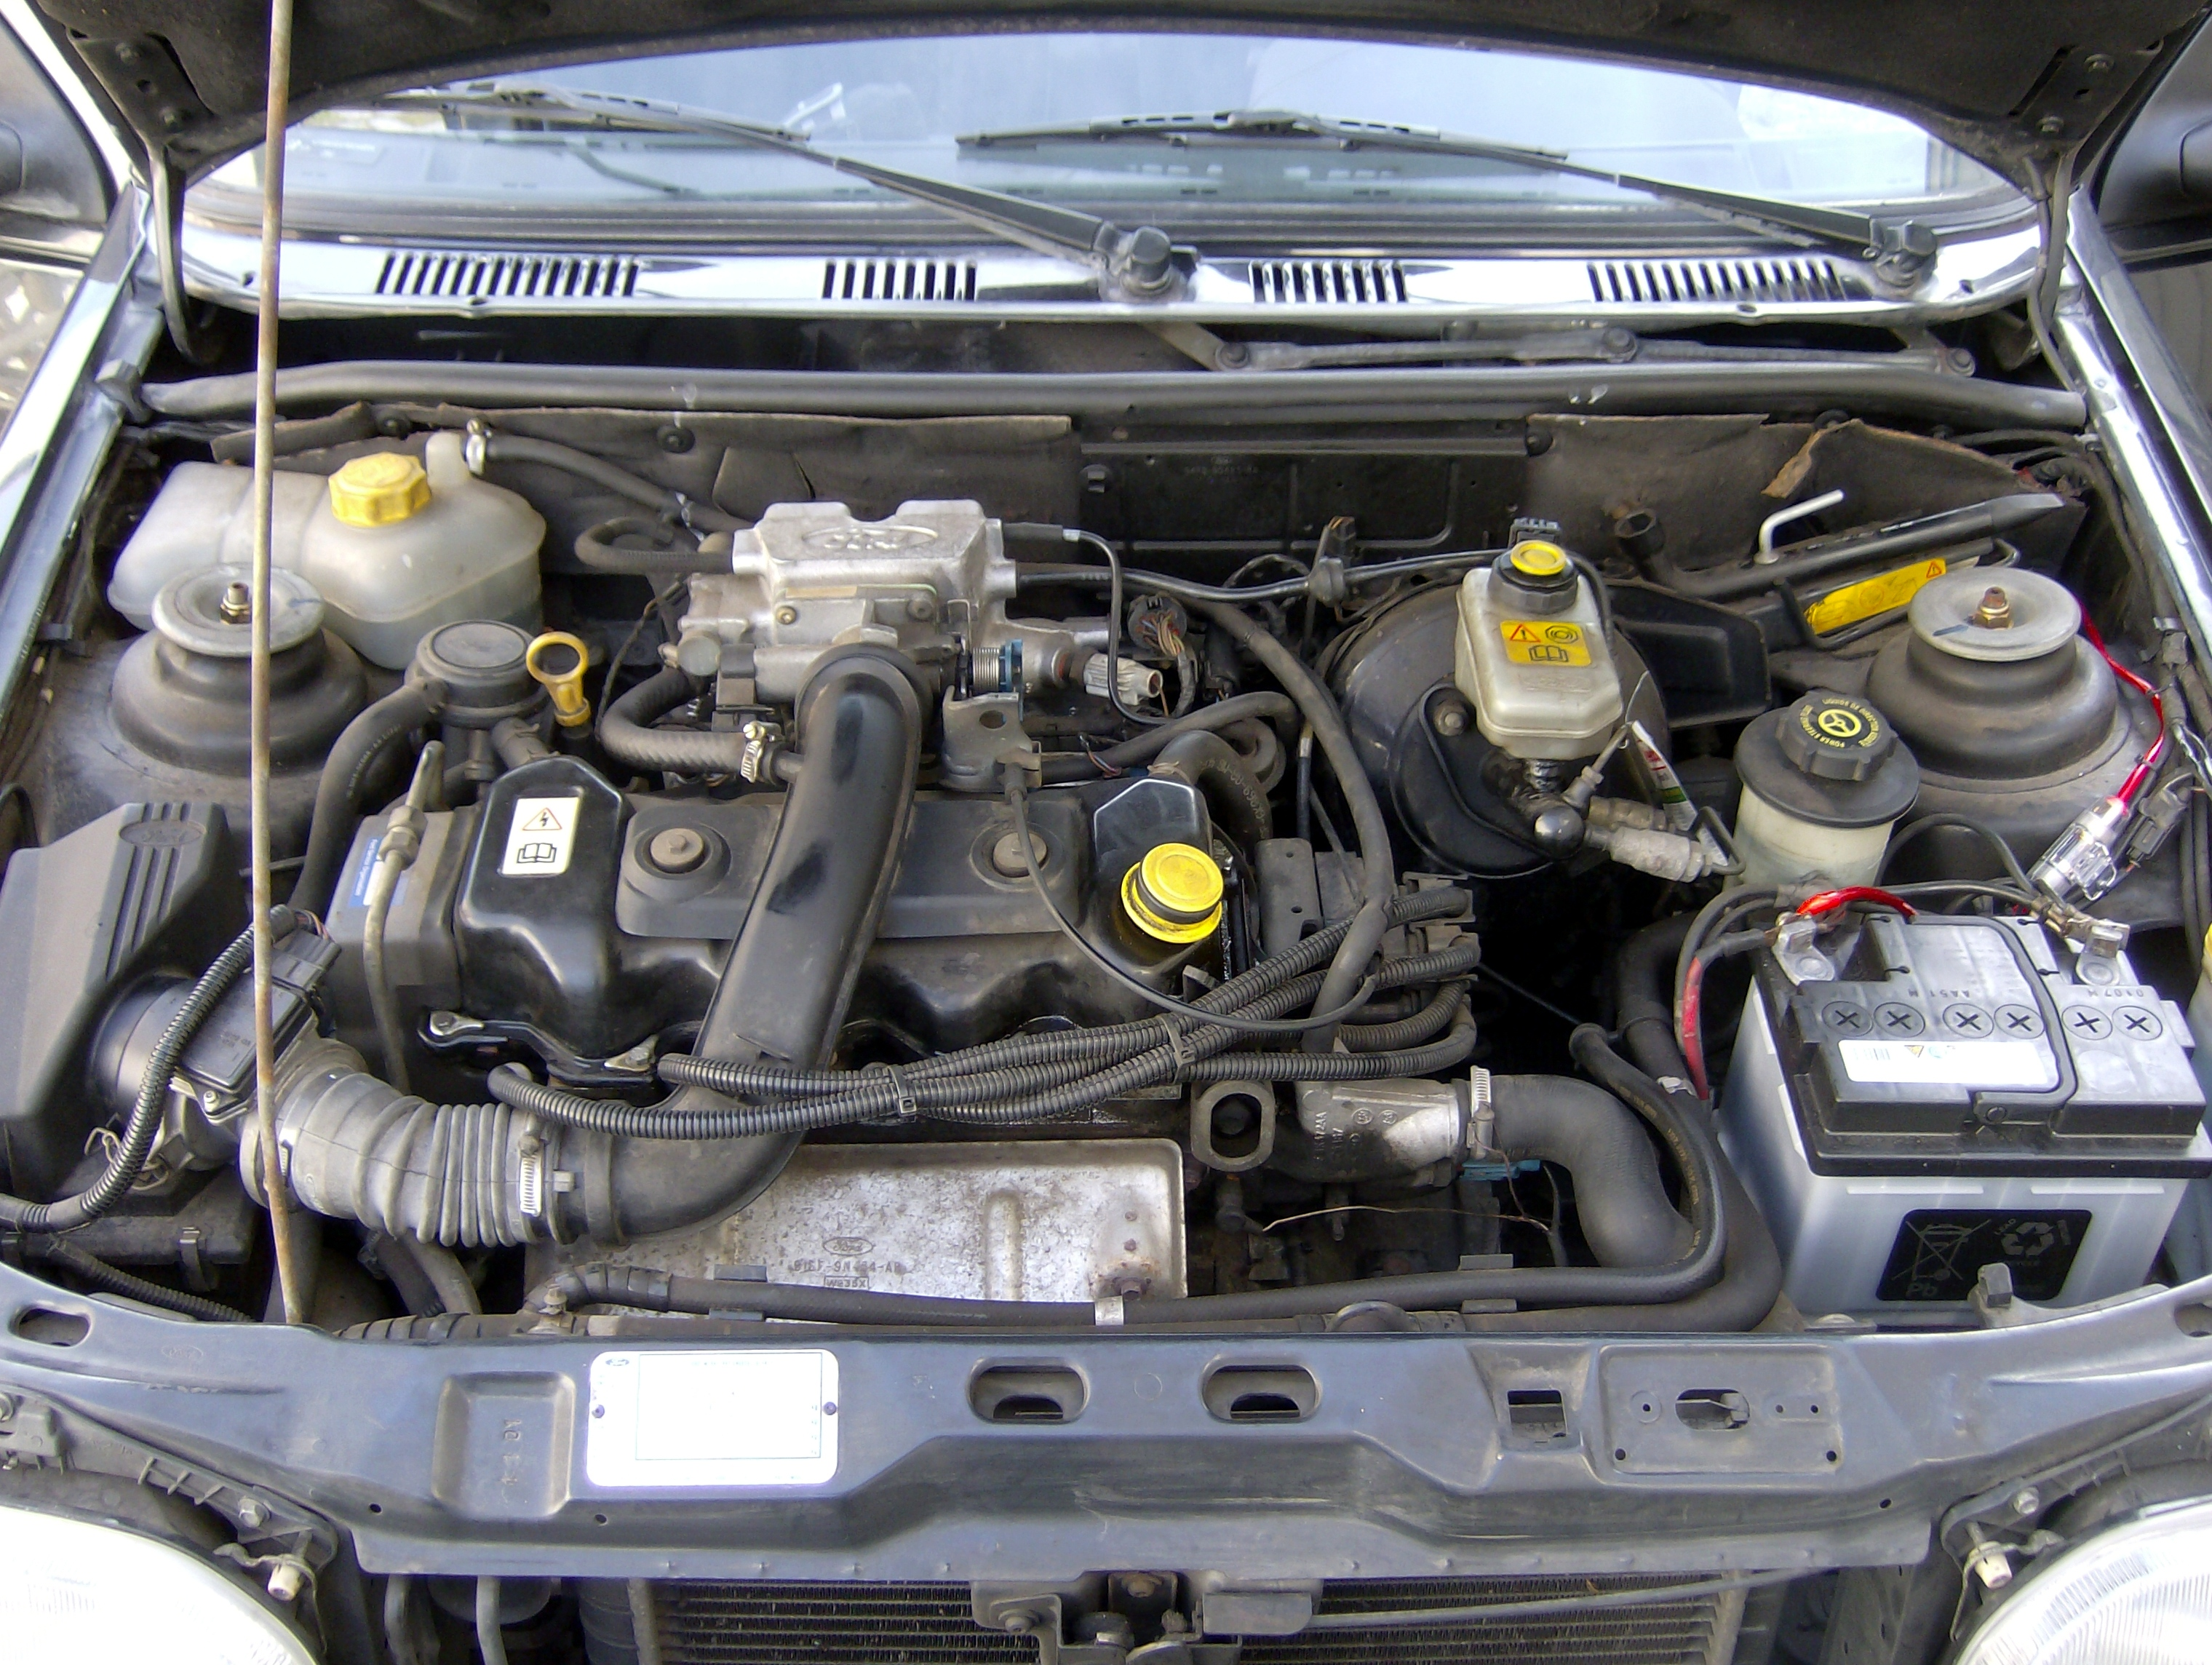 File Ford Fiesta Mk3 Gfj 1995 Engine Jpg Wikimedia Commons